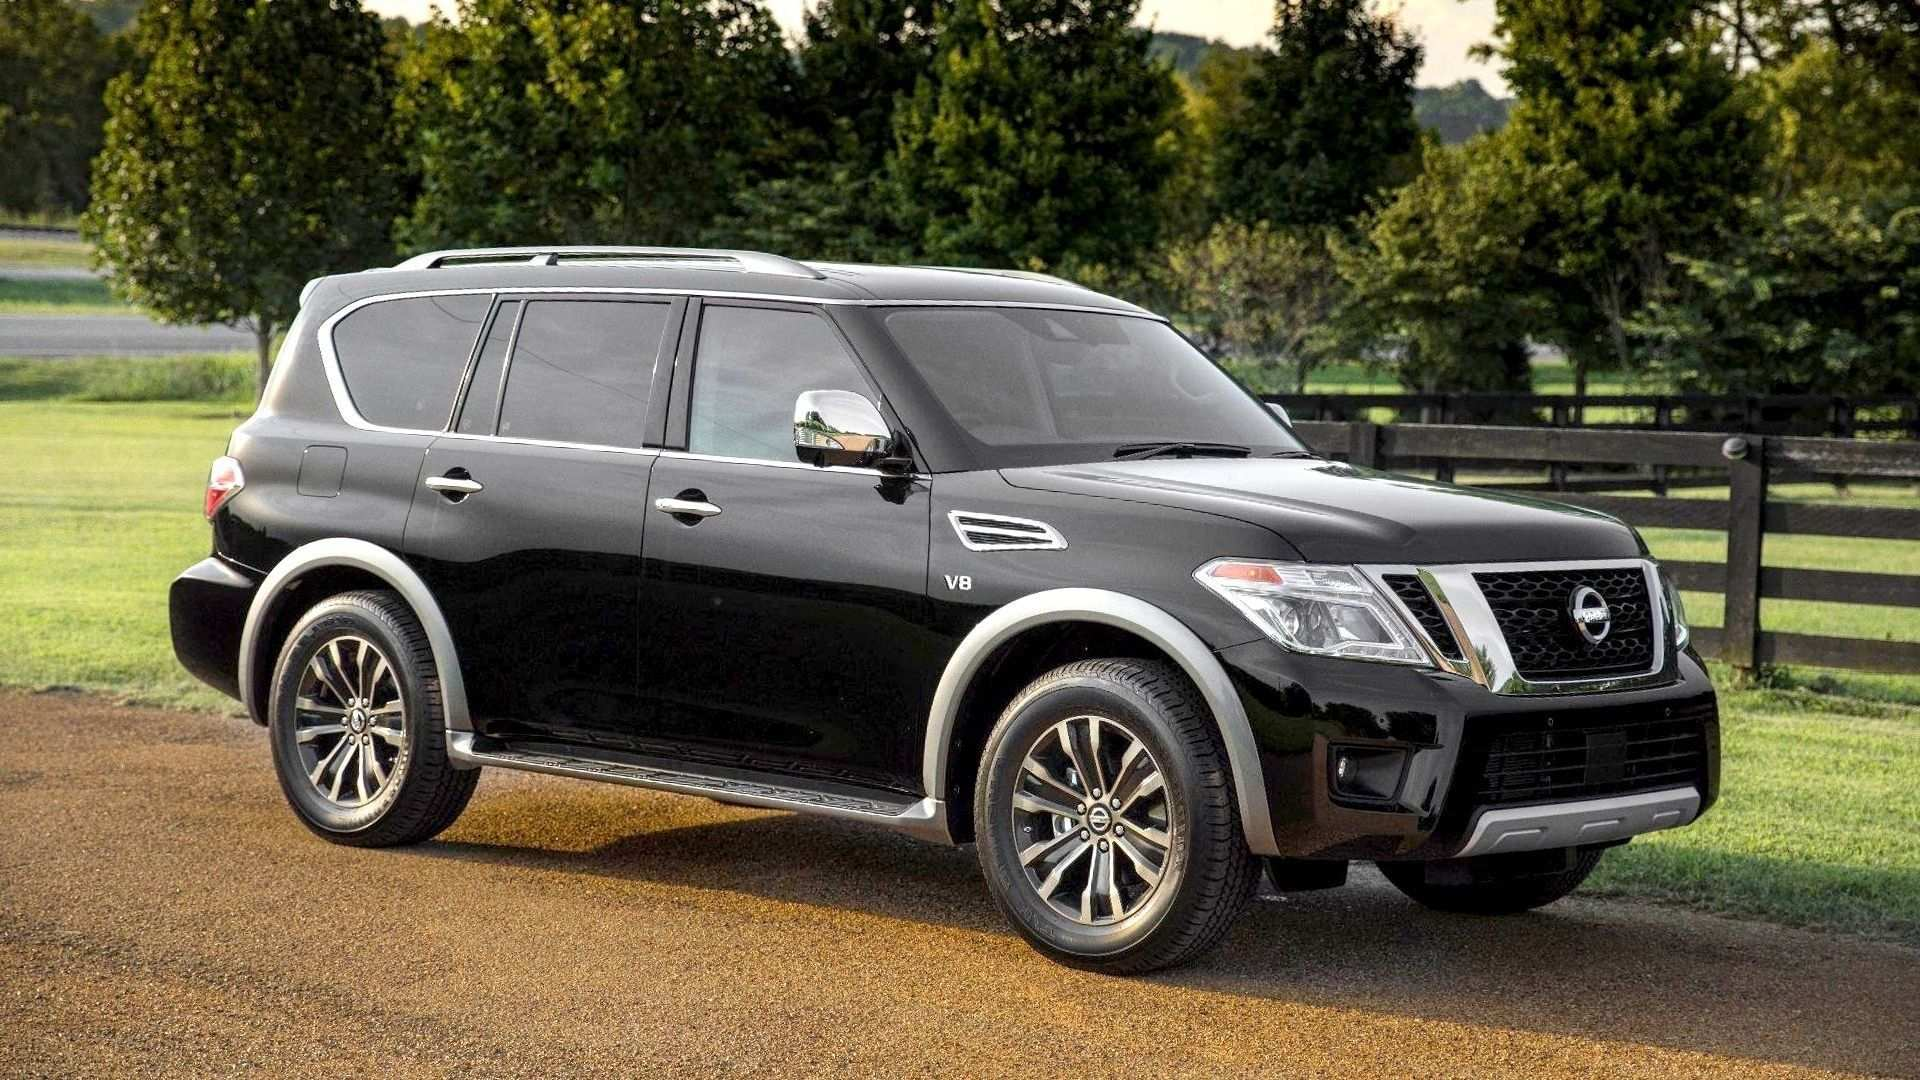 63 New New Nissan Patrol 2019 Spy Shoot for New Nissan Patrol 2019